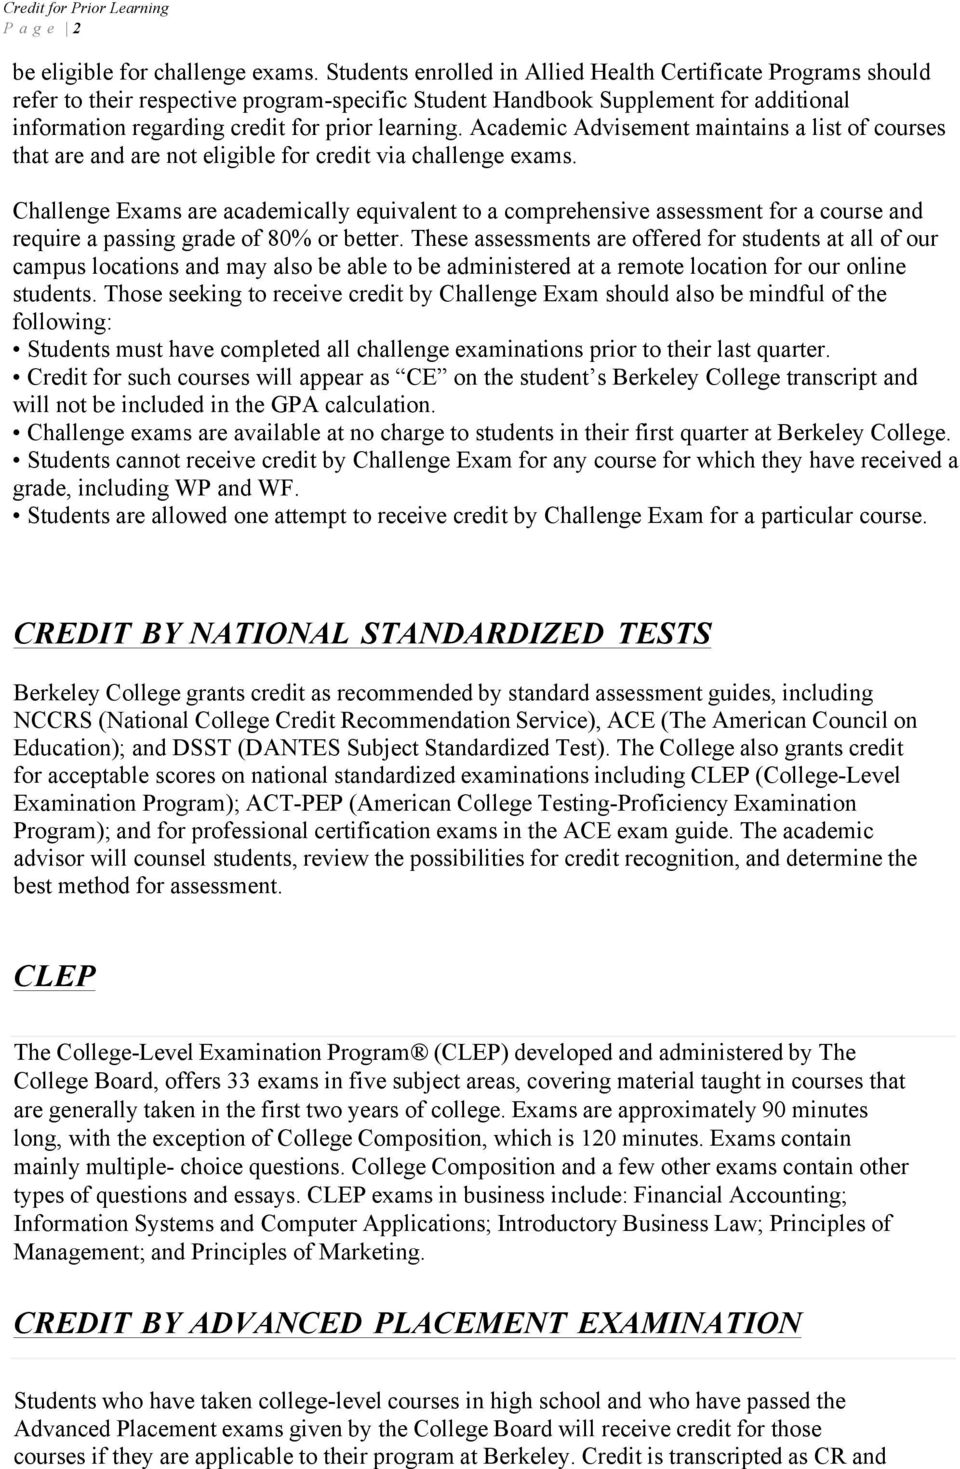 Academic Advisement maintains a list of courses that are and are not eligible for credit via challenge exams.